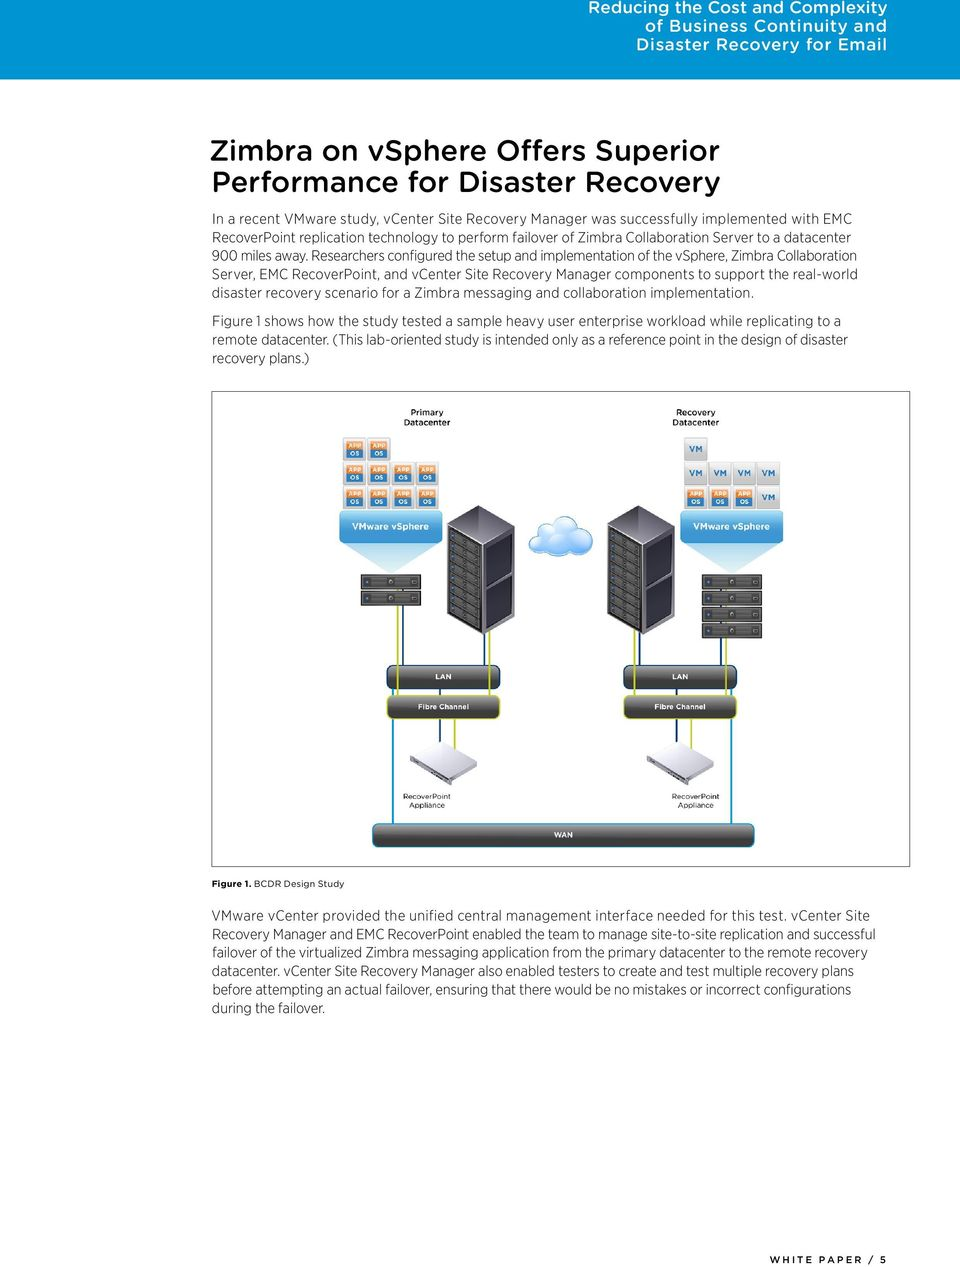 Researchers configured the setup and implementation of the vsphere, Zimbra Collaboration Server, EMC RecoverPoint, and vcenter Site Recovery Manager components to support the real-world disaster